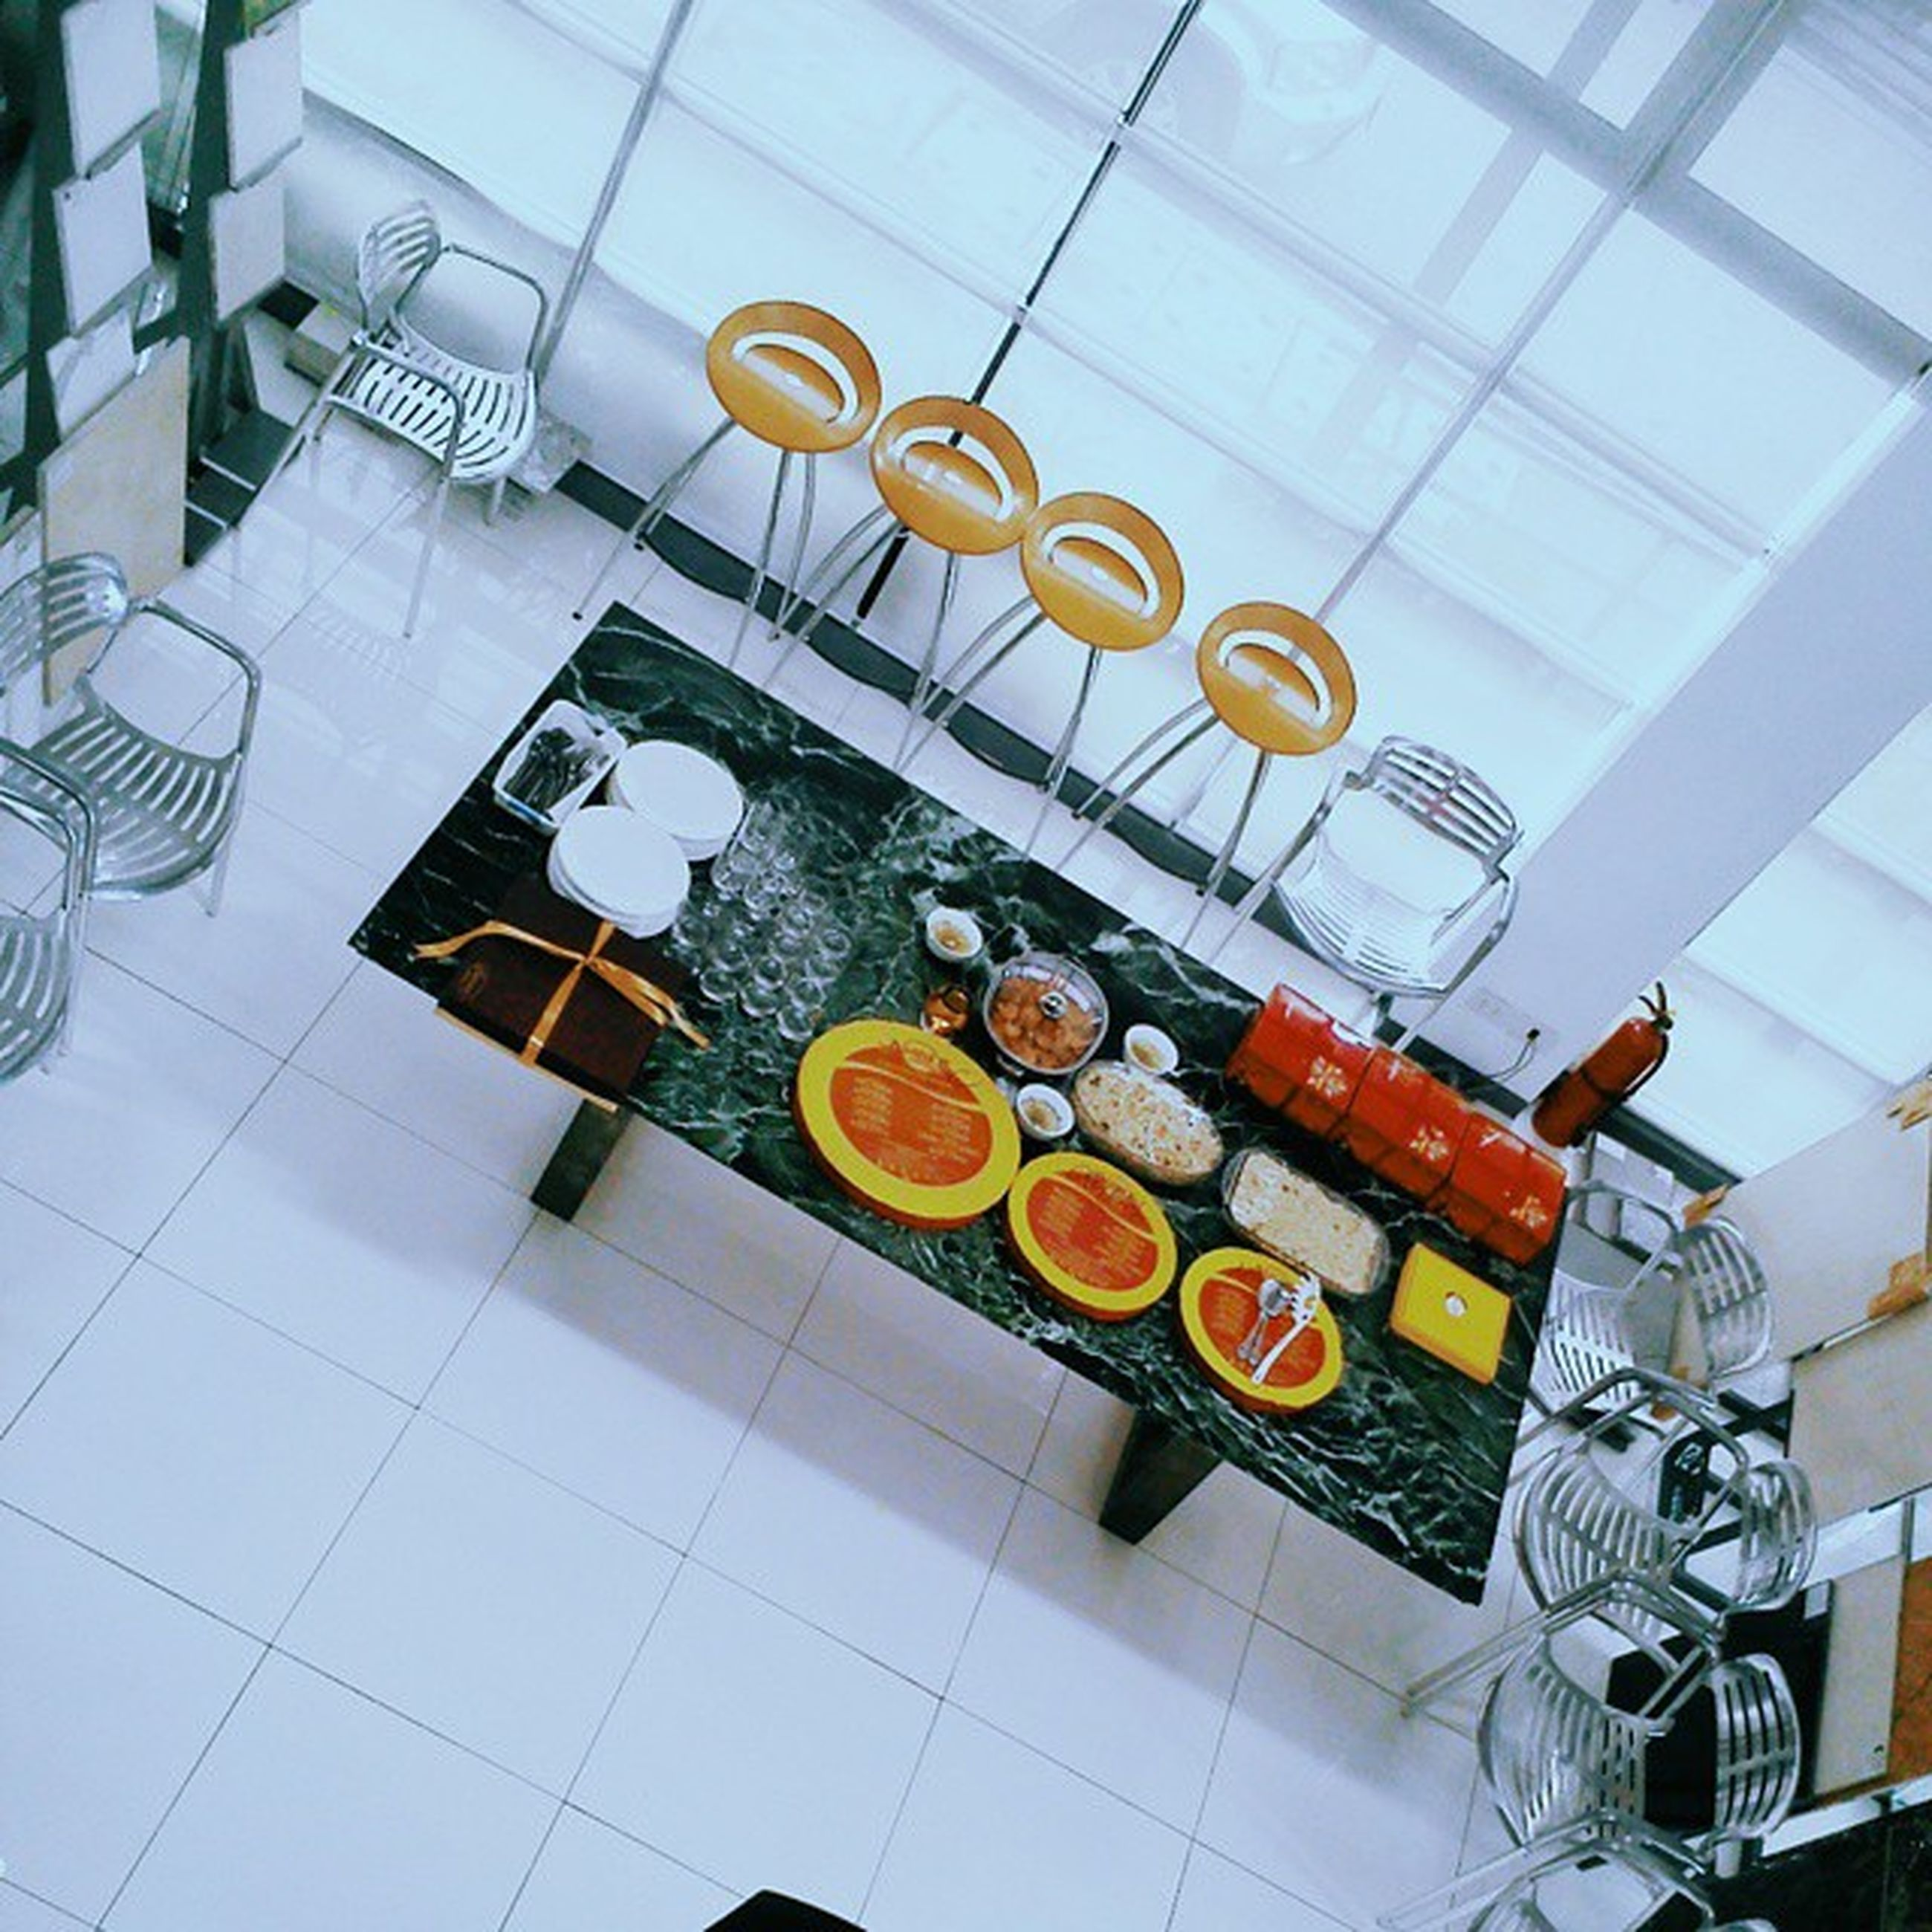 indoors, high angle view, variation, large group of objects, arrangement, hanging, table, tiled floor, glass - material, day, no people, low angle view, still life, reflection, ceiling, food and drink, abundance, choice, tile, directly above